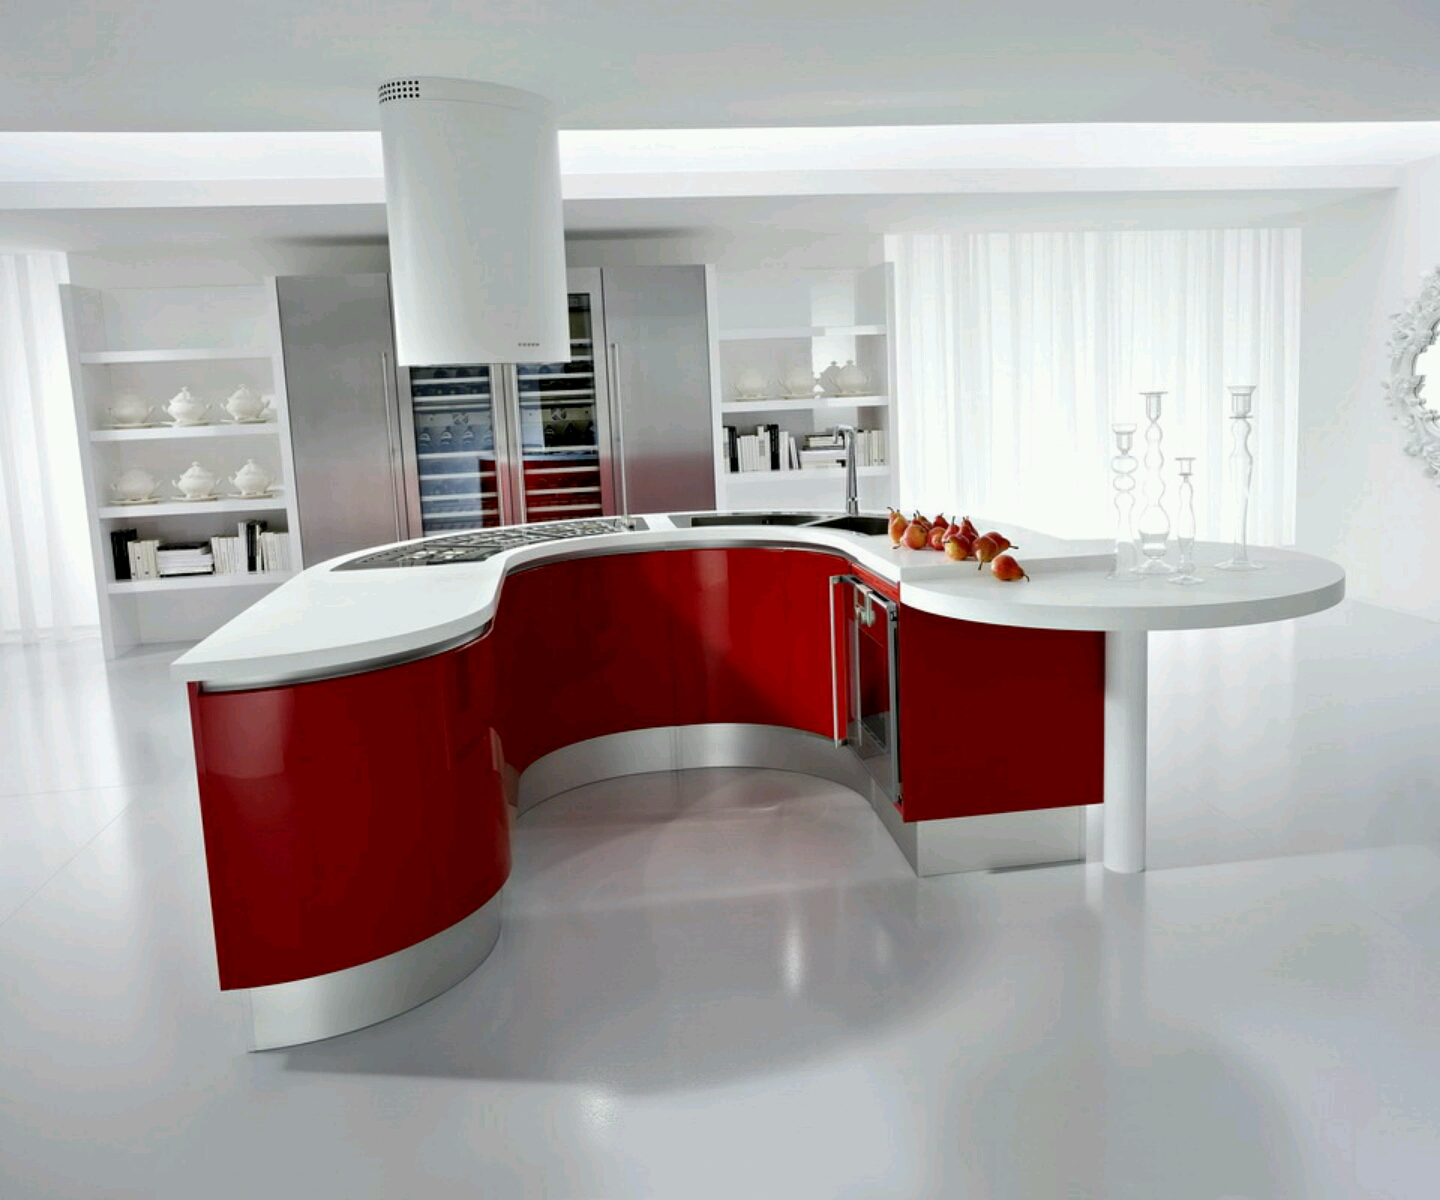 Modern kitchen cabinets designs ideas furniture gallery for Modern kitchen plans